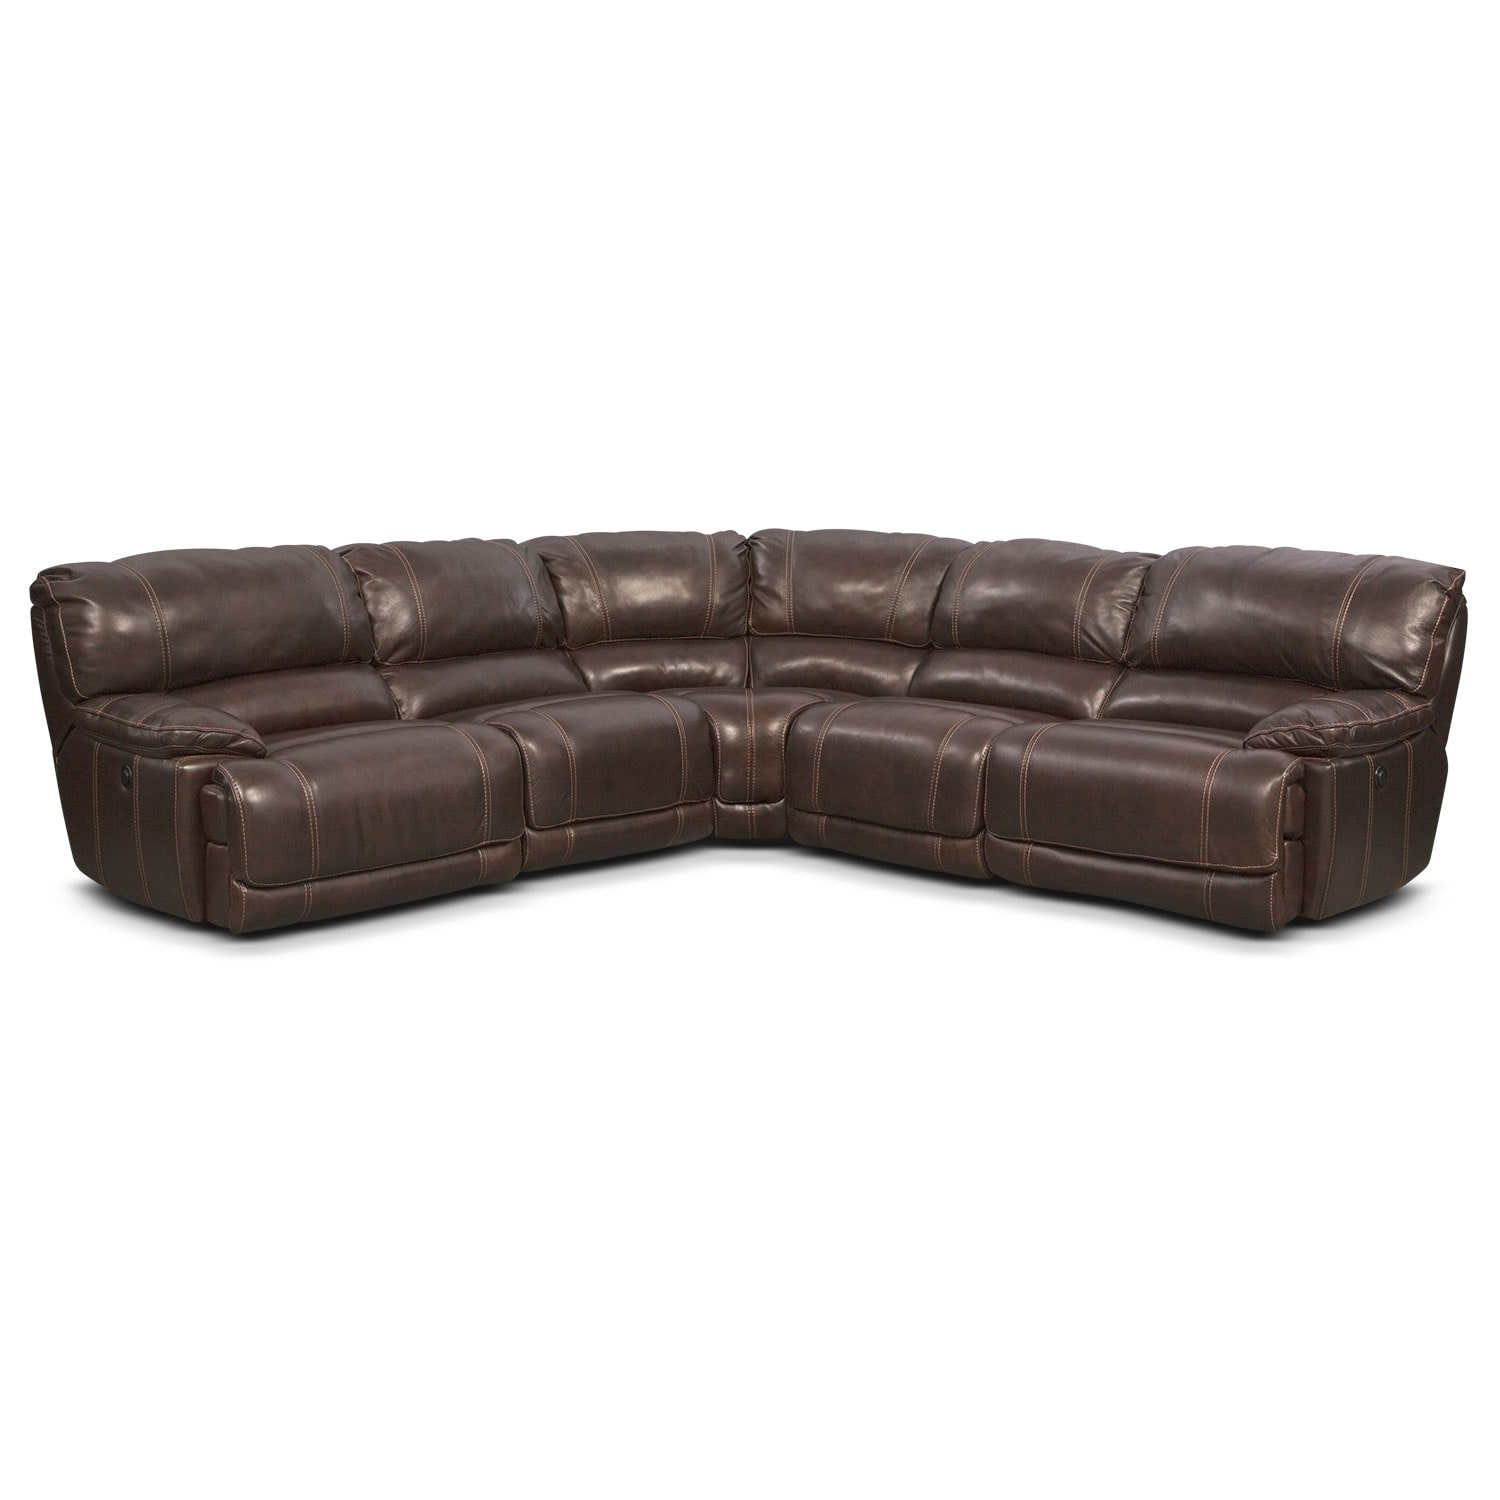 St. Malo 5-Piece Right-Facing Power Reclining Sectional - Brown